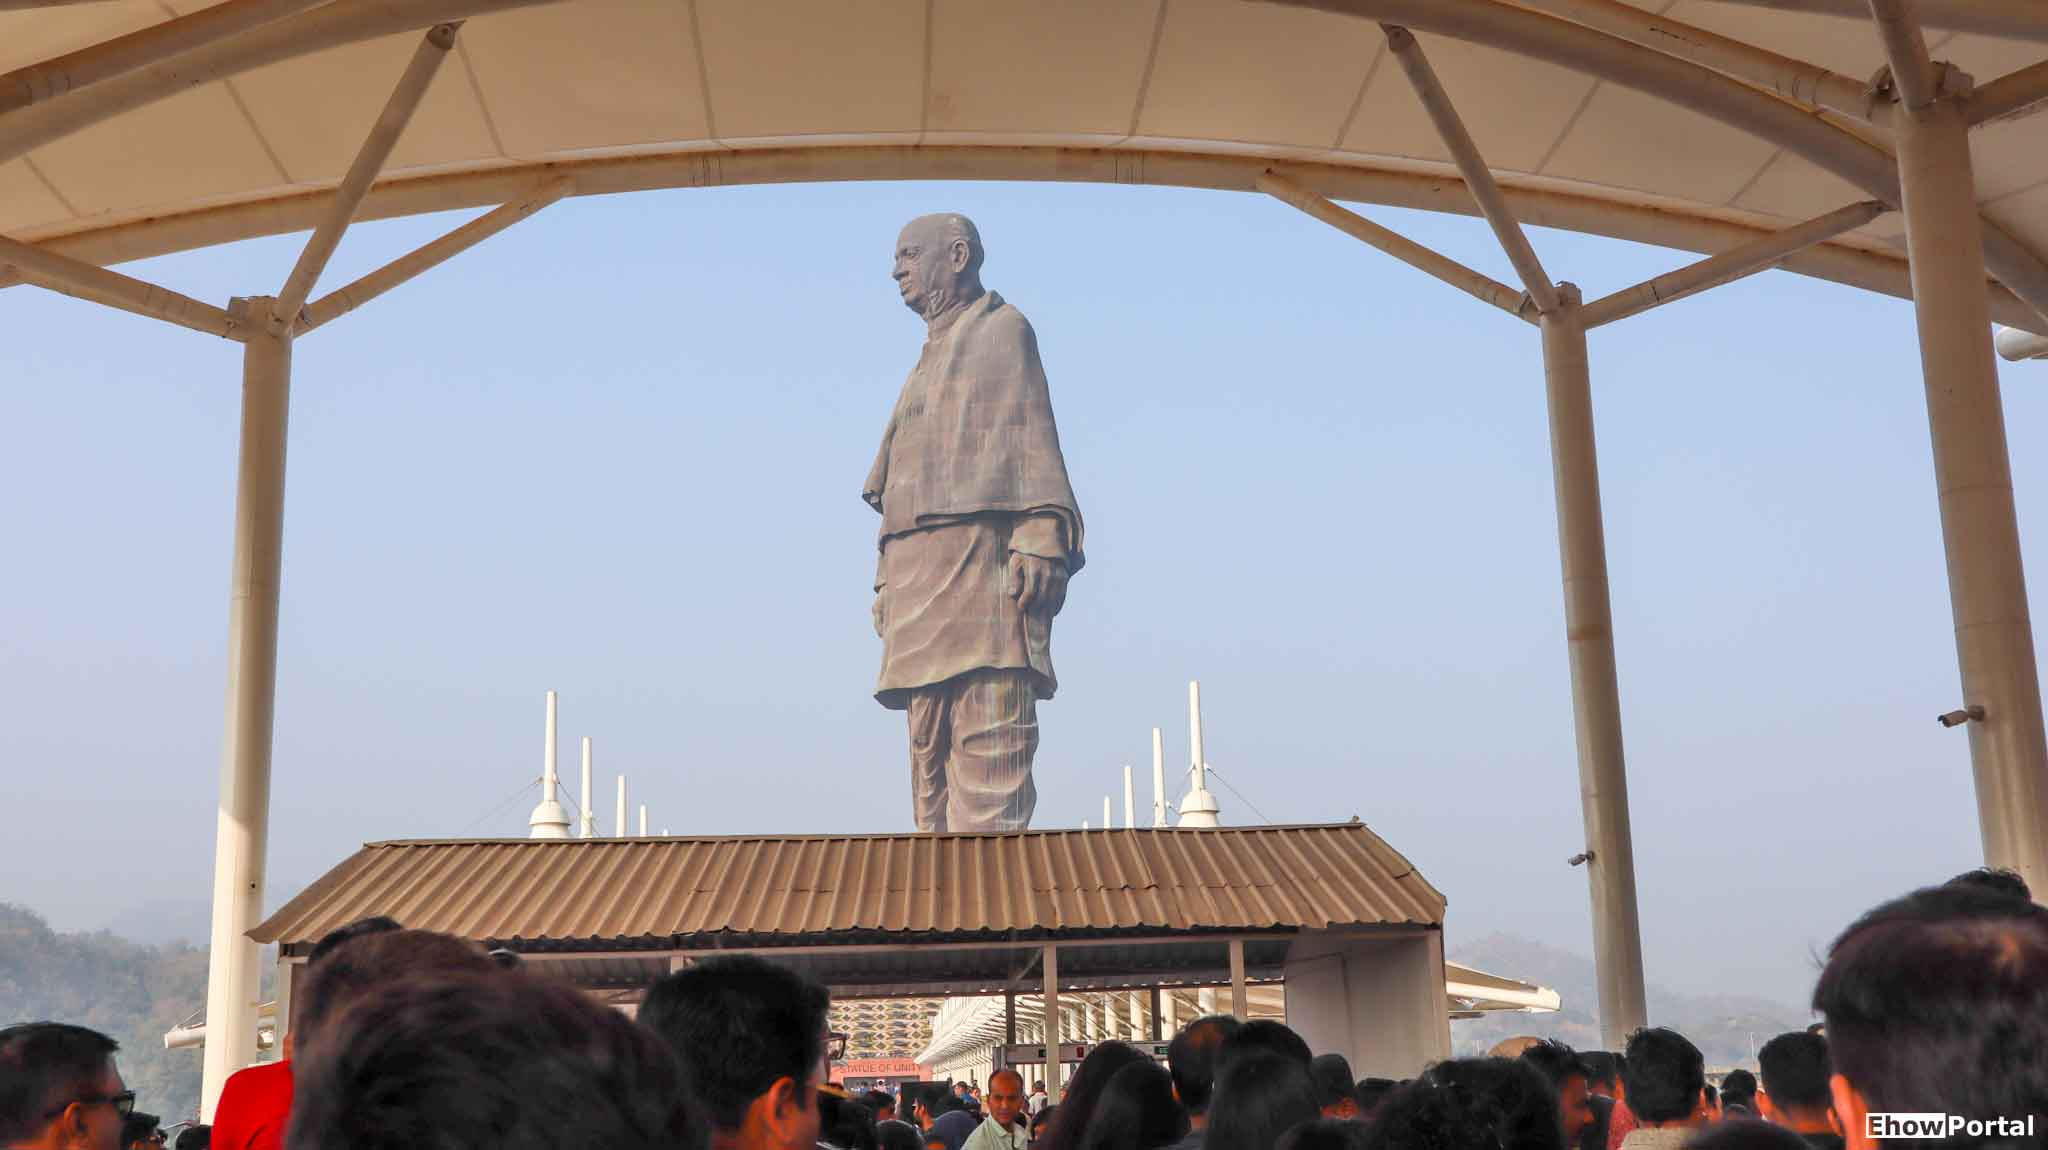 Statue of Unity Ticket Verification